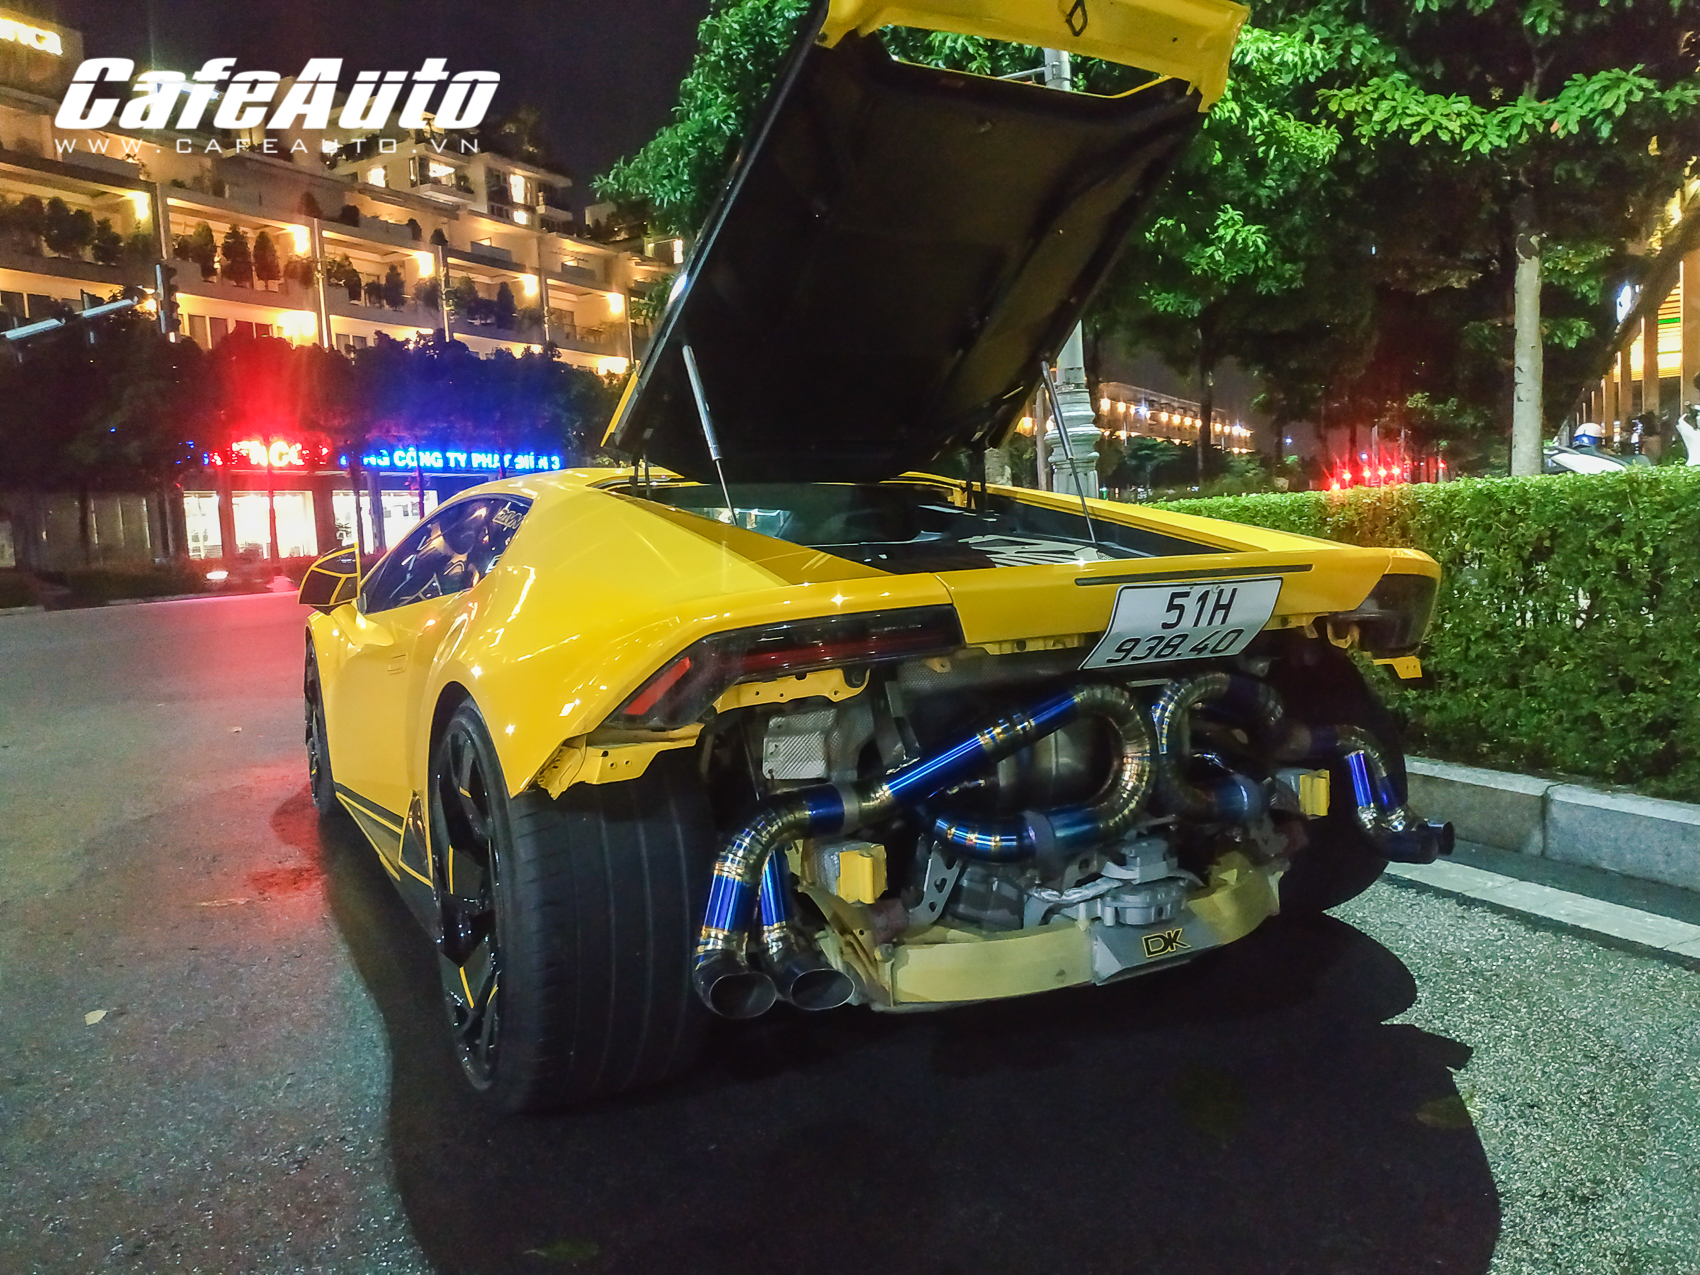 huracanmansory-cafeautovn-3